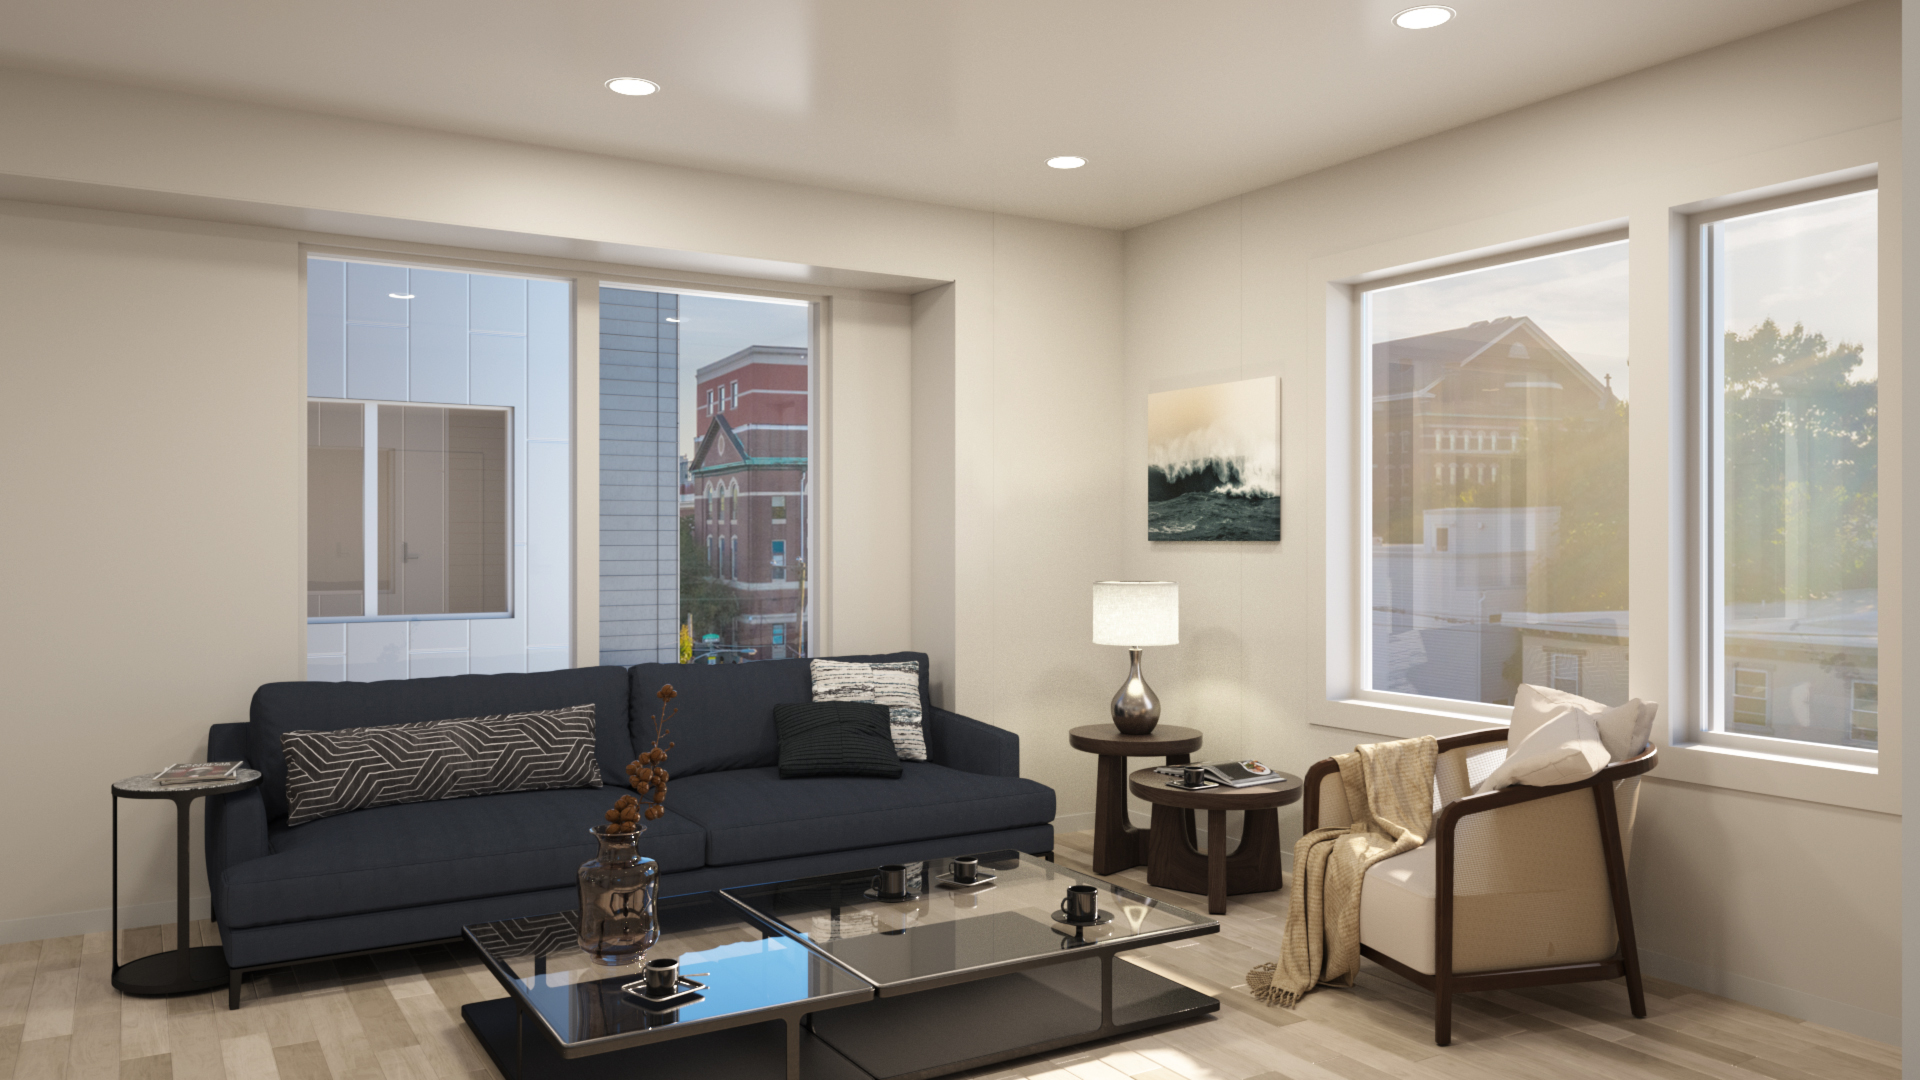 3D Images: 6 Tips for Selling New Apartments